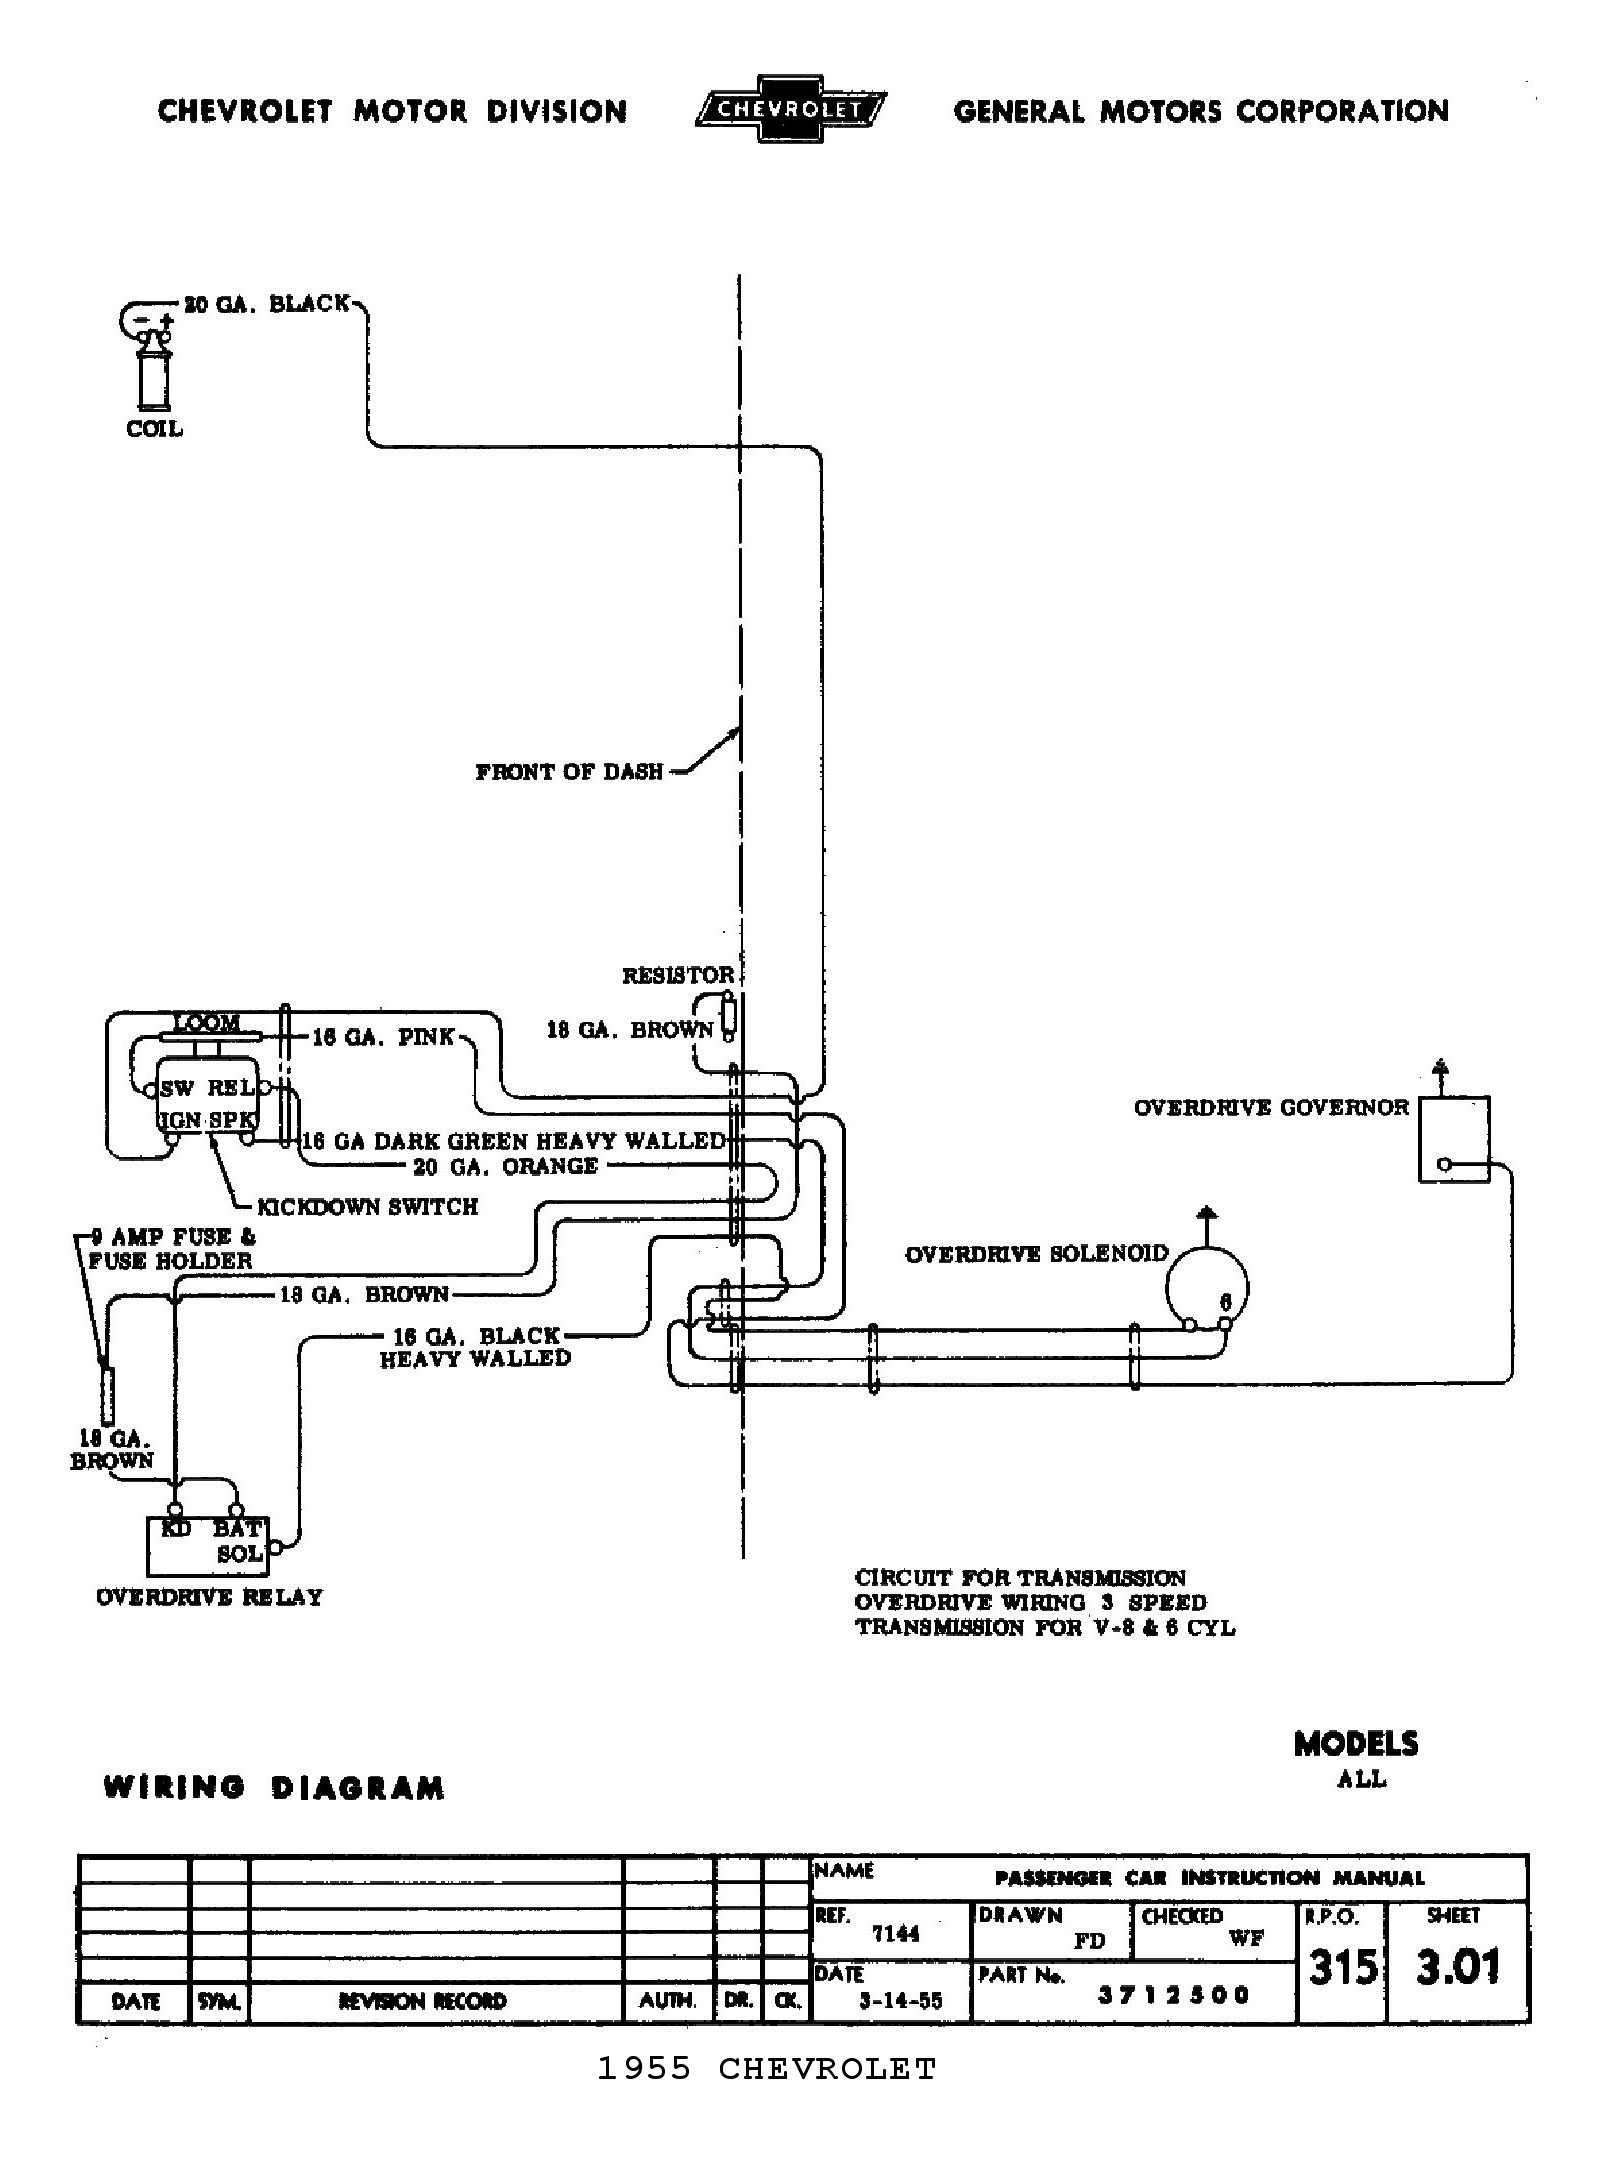 55odtrans chevy wiring diagrams chevy ignition switch diagram at crackthecode.co